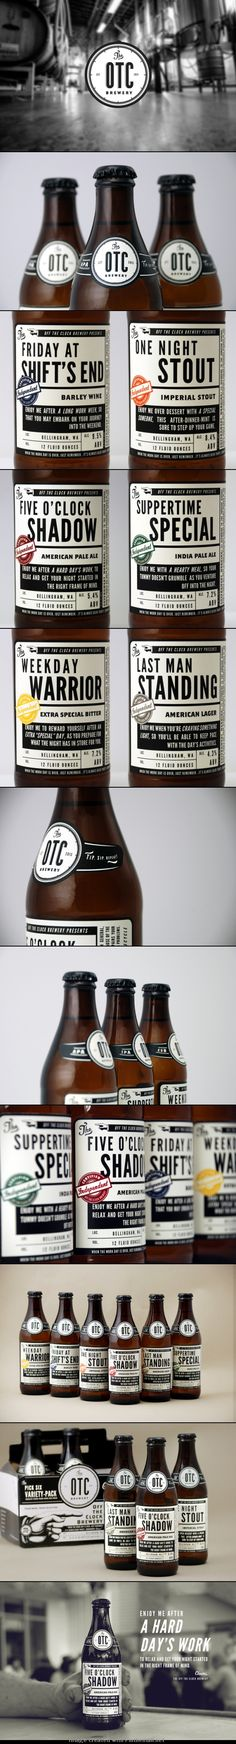 "James J. Miller Design was tasked to design the packaging for The OTC Brewery. The OTC, or ""Off the Clock"" Brewery is an independent craft-beer brewing company to be located in Bellingham, WA. Its stark, contrasty design and creative copywriting Vintage Packaging, Beverage Packaging, Bottle Packaging, Coffee Packaging, Craft Beer Brands, Craft Beer Labels, Wine Labels, Food Branding, Food Packaging Design"